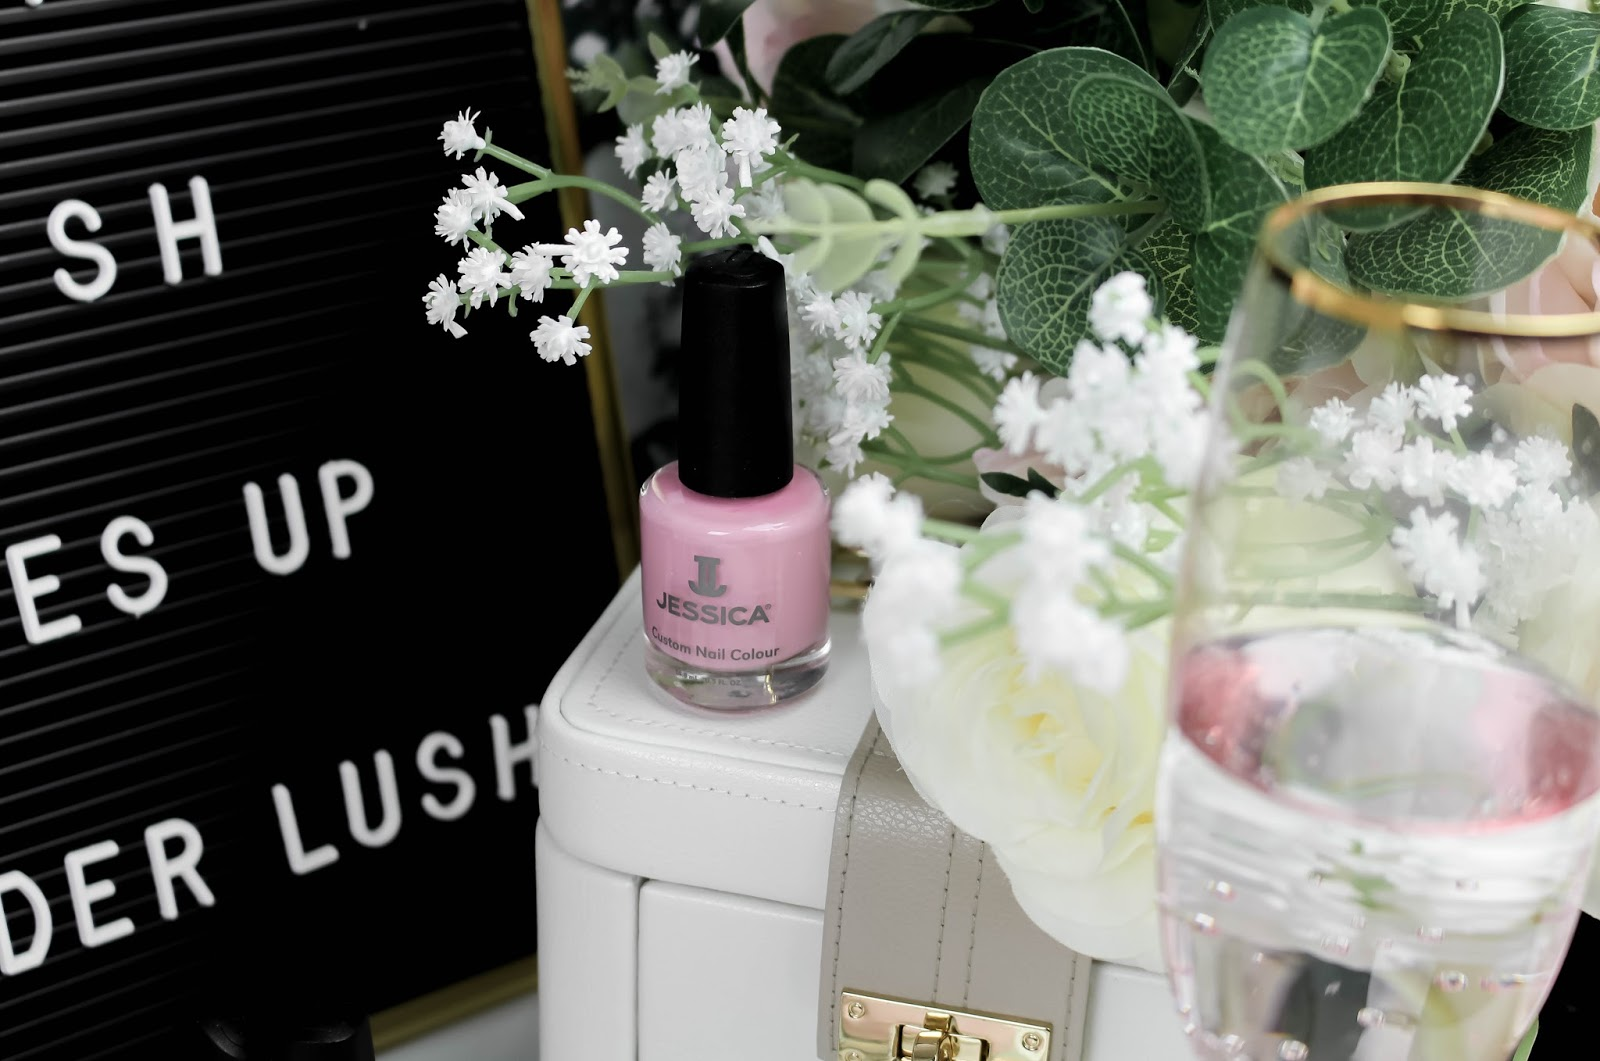 Jessica Nails La Vie en Rose Beauty Blogger Review